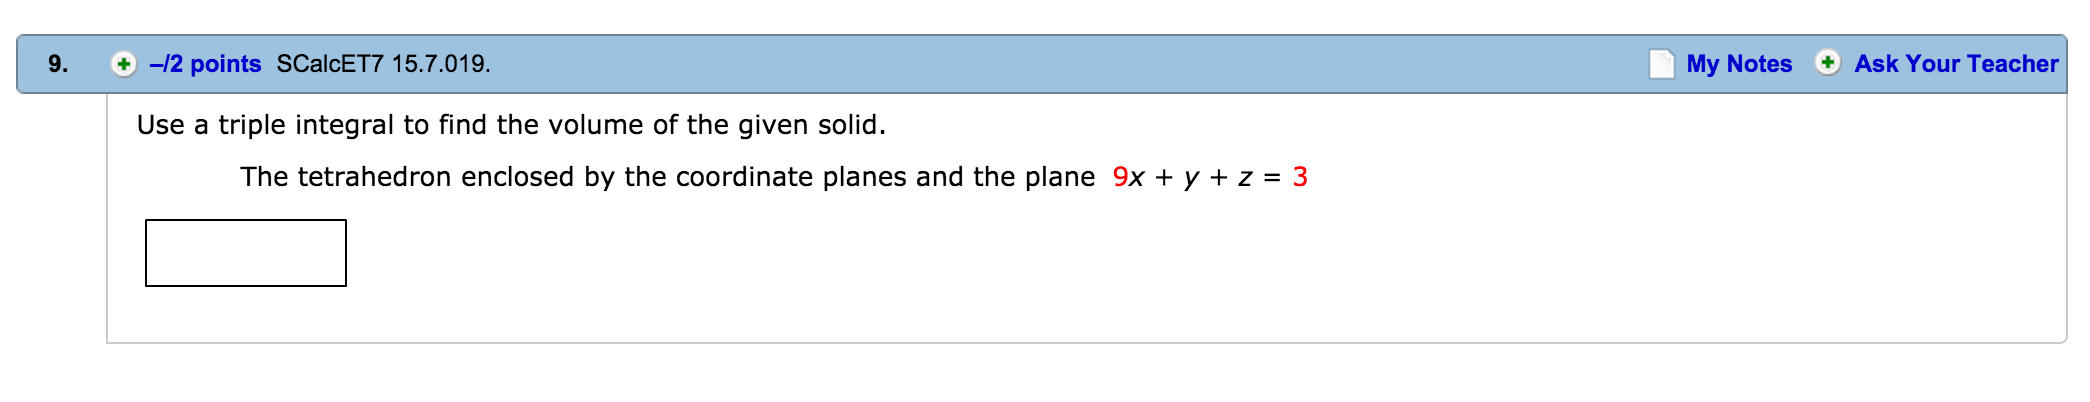 Image For Use A Triple Integral To Find The Volume Of The Given Solid The